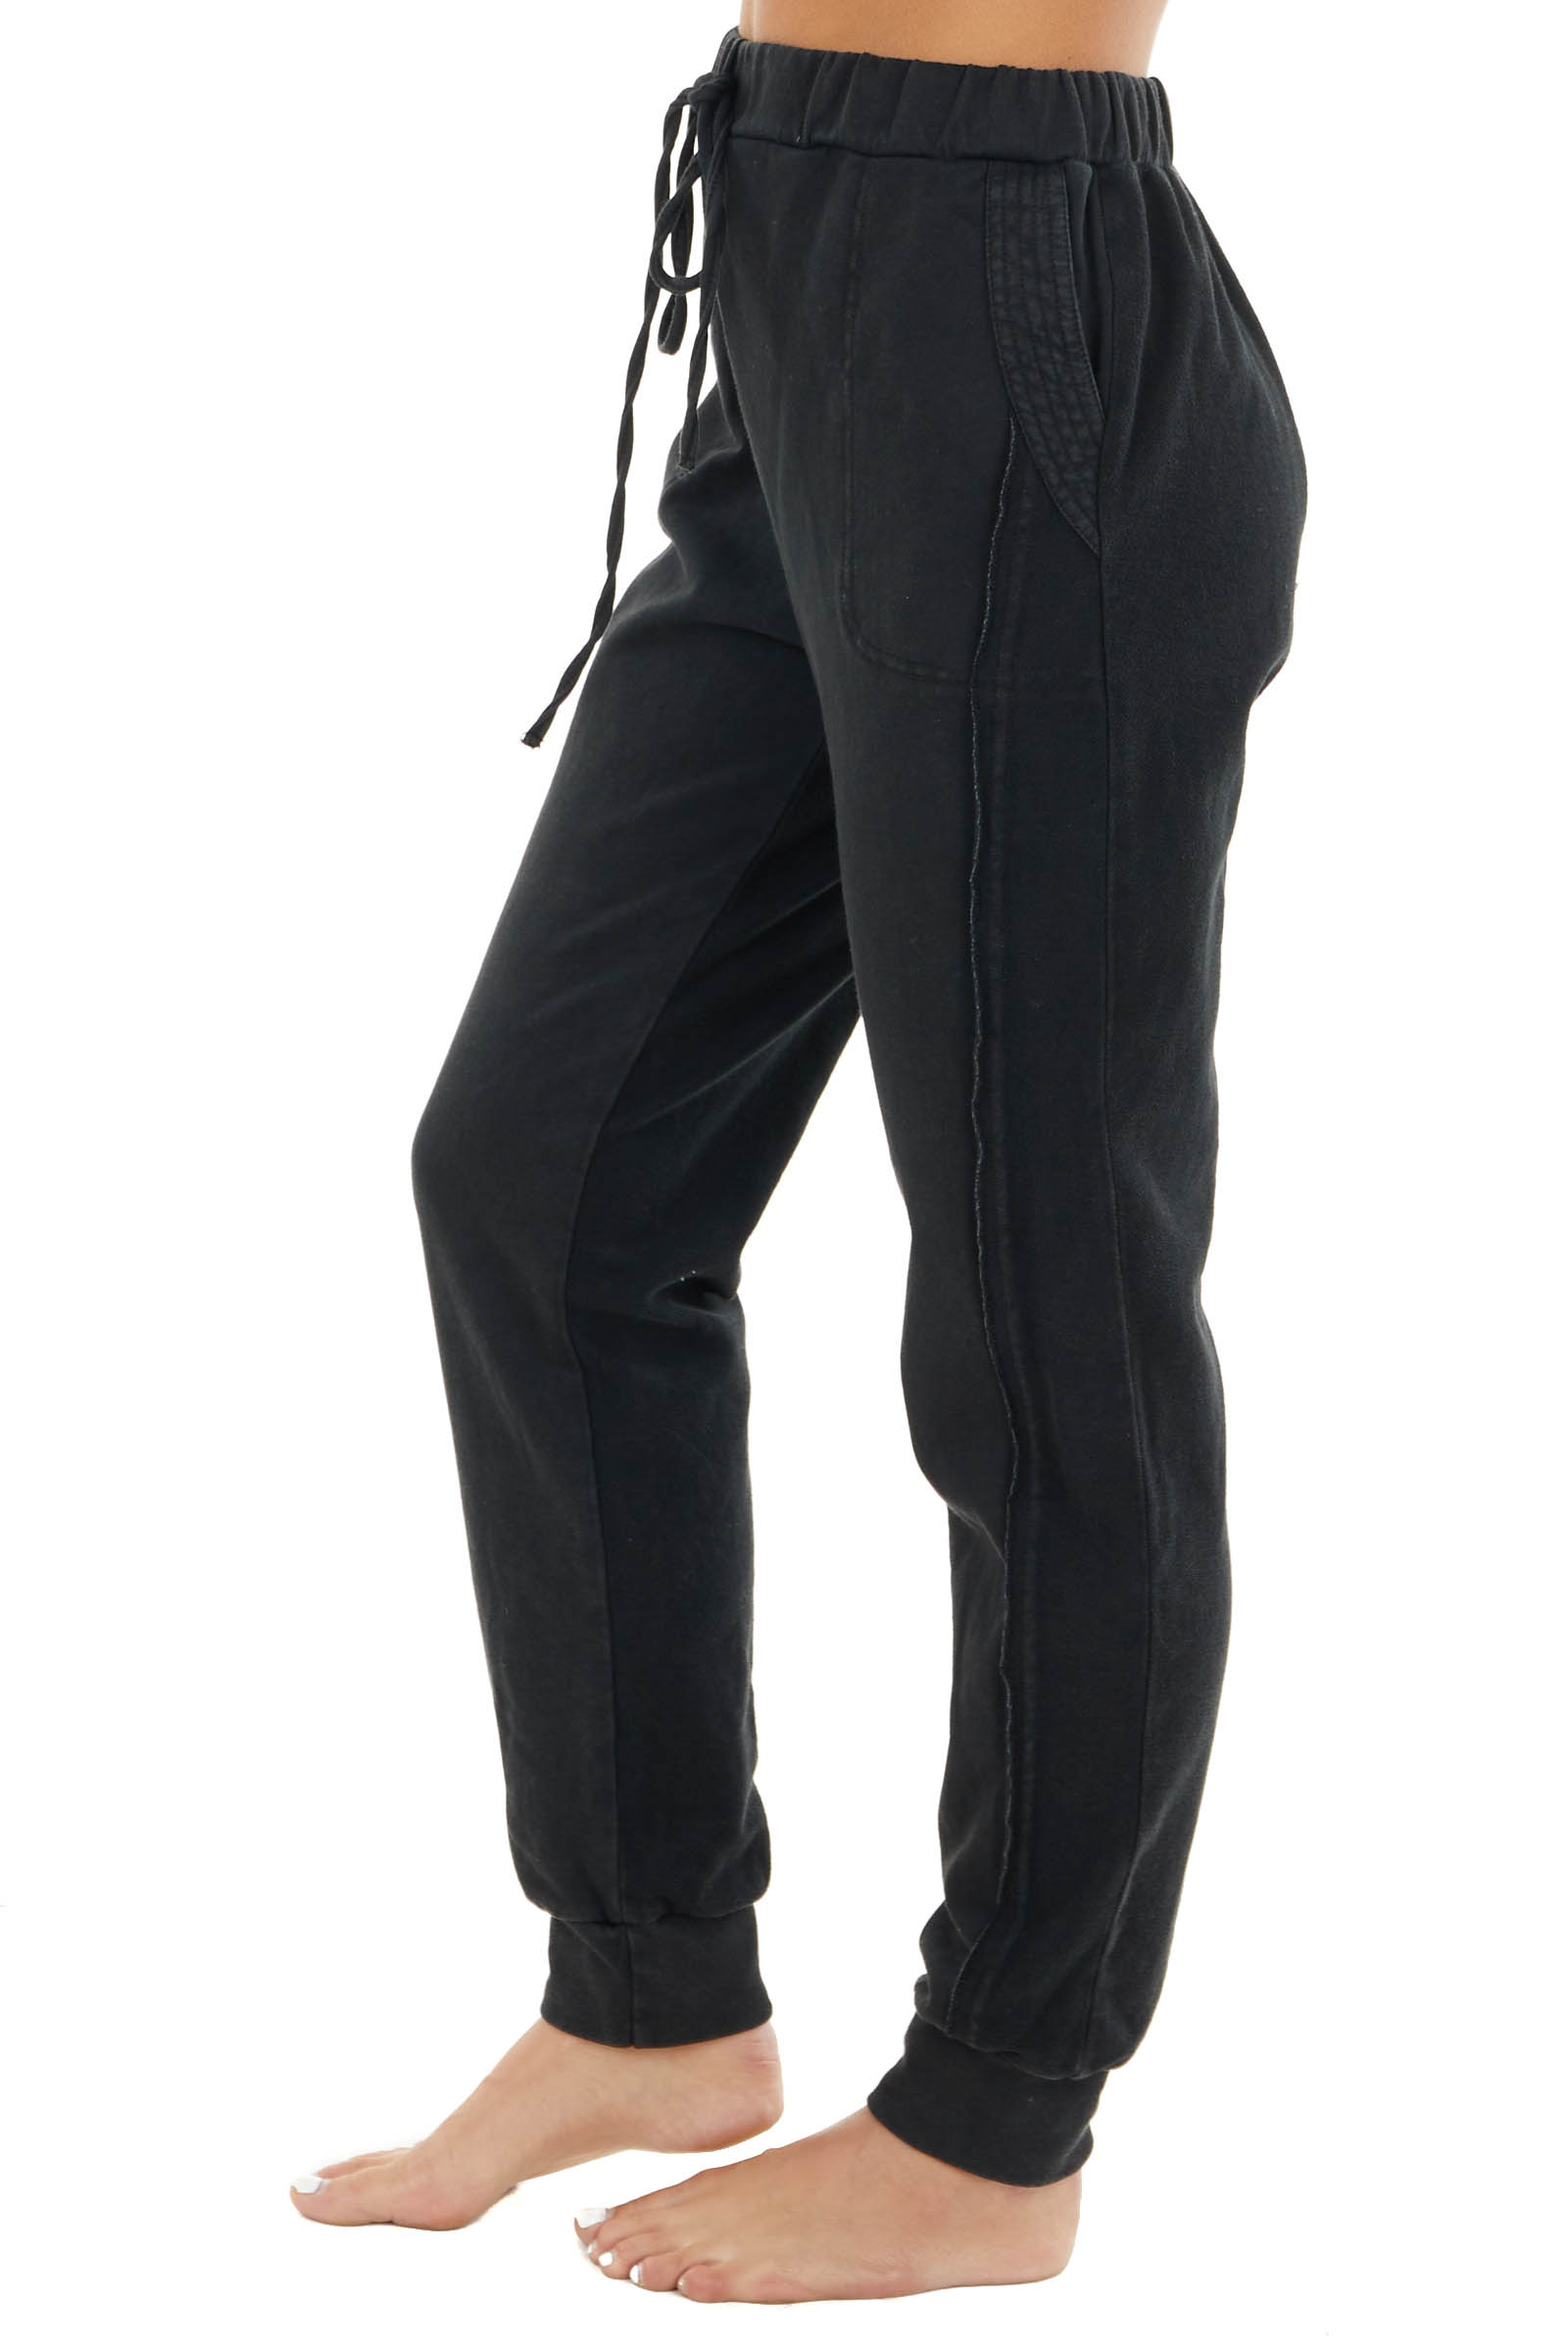 Black Elastic Waist and Drawstring Joggers with Pockets